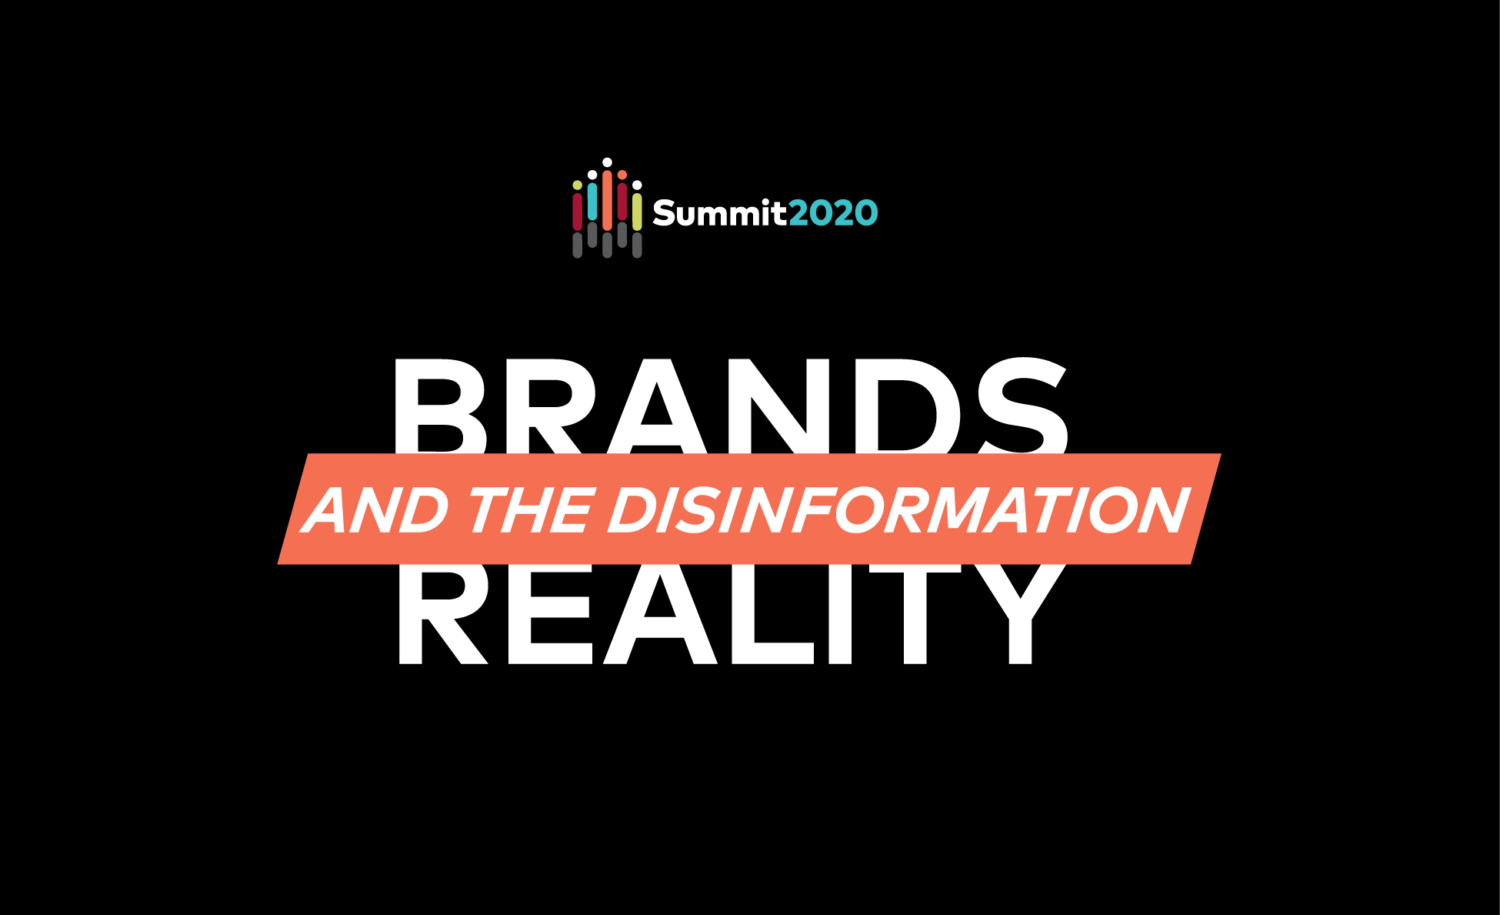 Summit 2020: brands & the disinformation reality